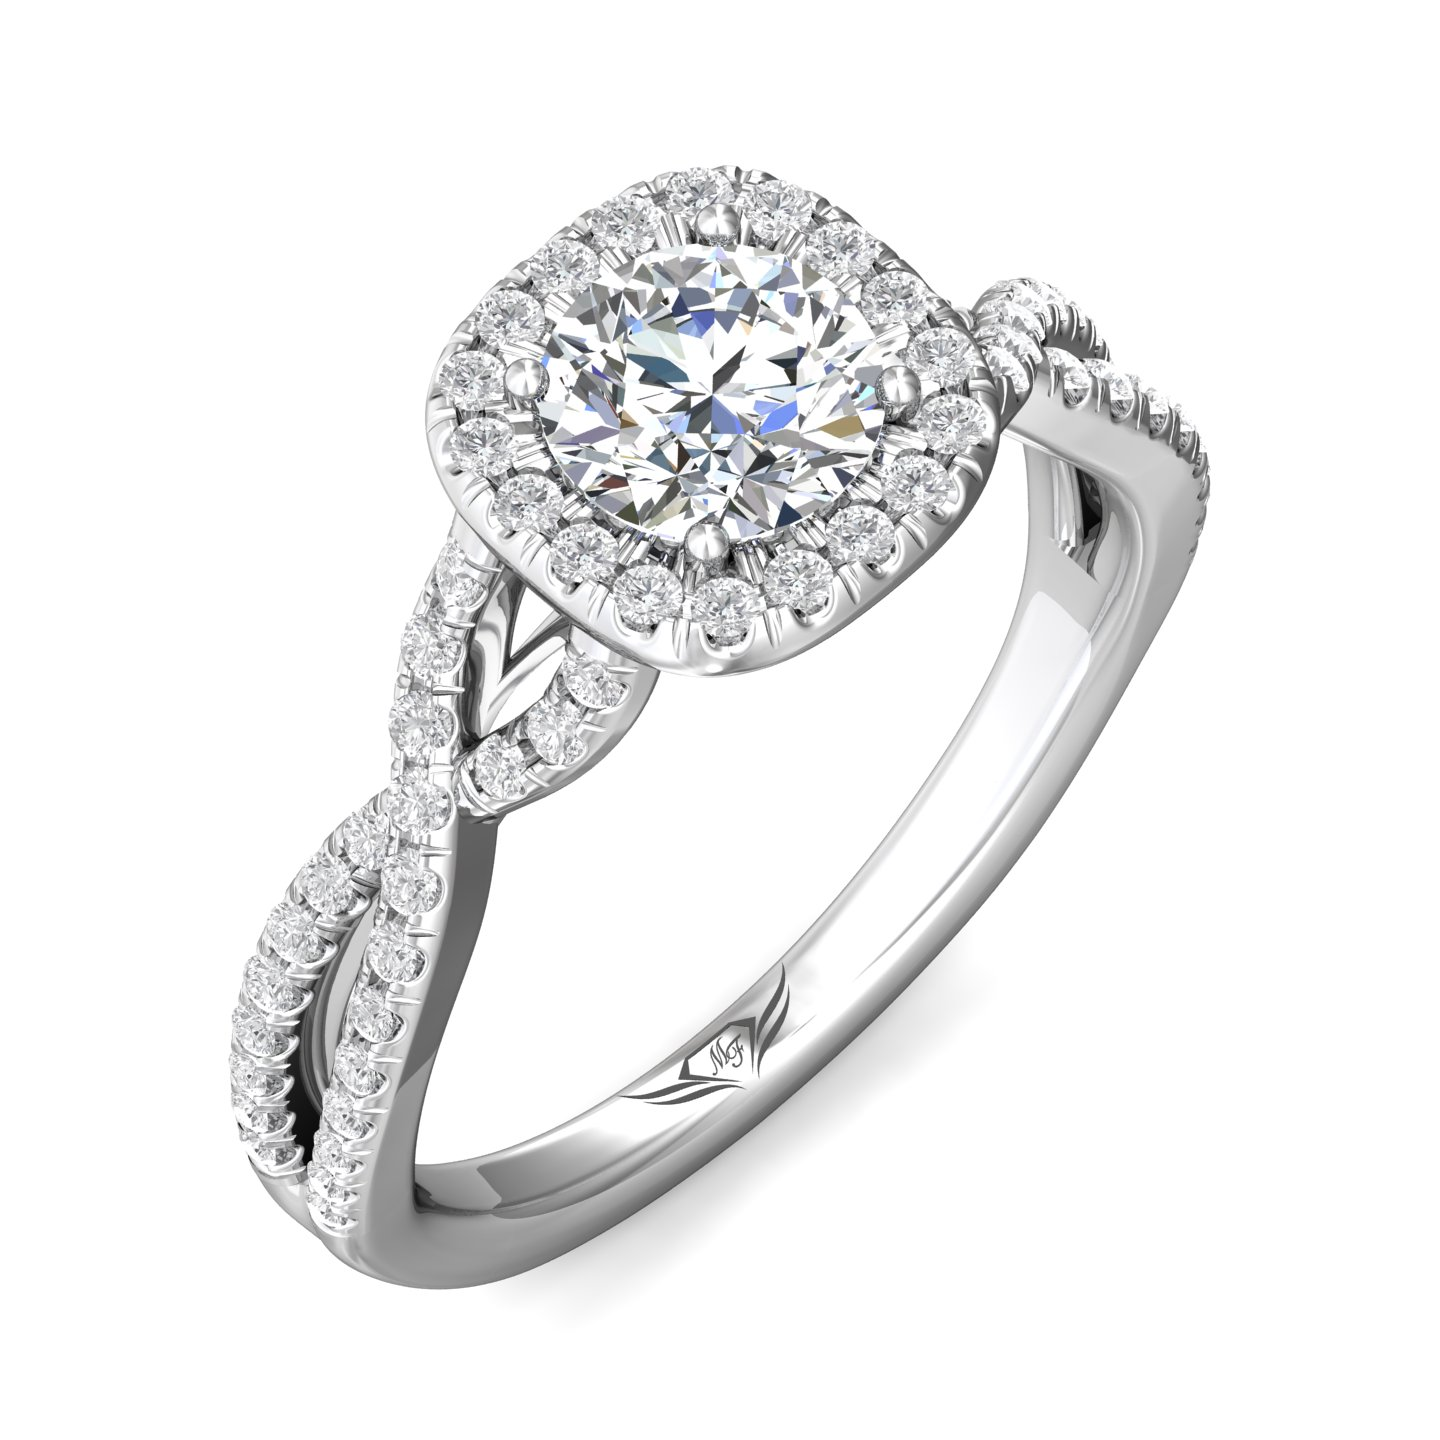 Rings - 14K White Gold FlyerFit Split Shank Engagement Ring - image 5